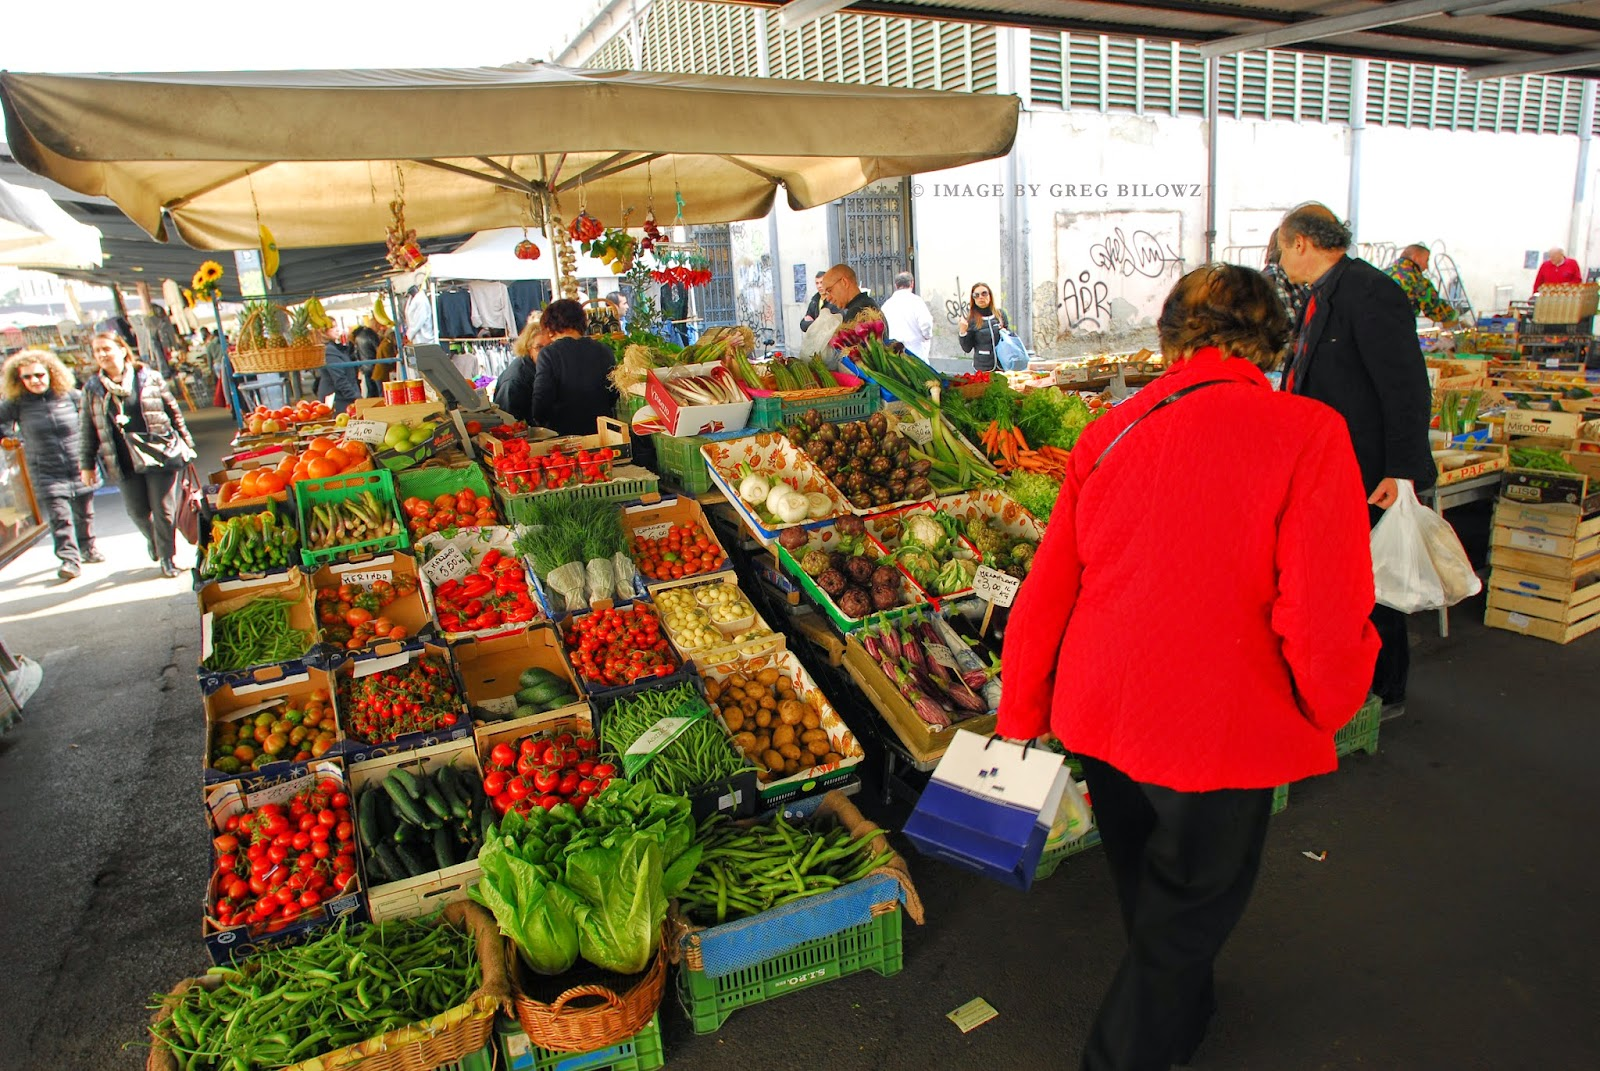 A farmers market in Florence, Italy